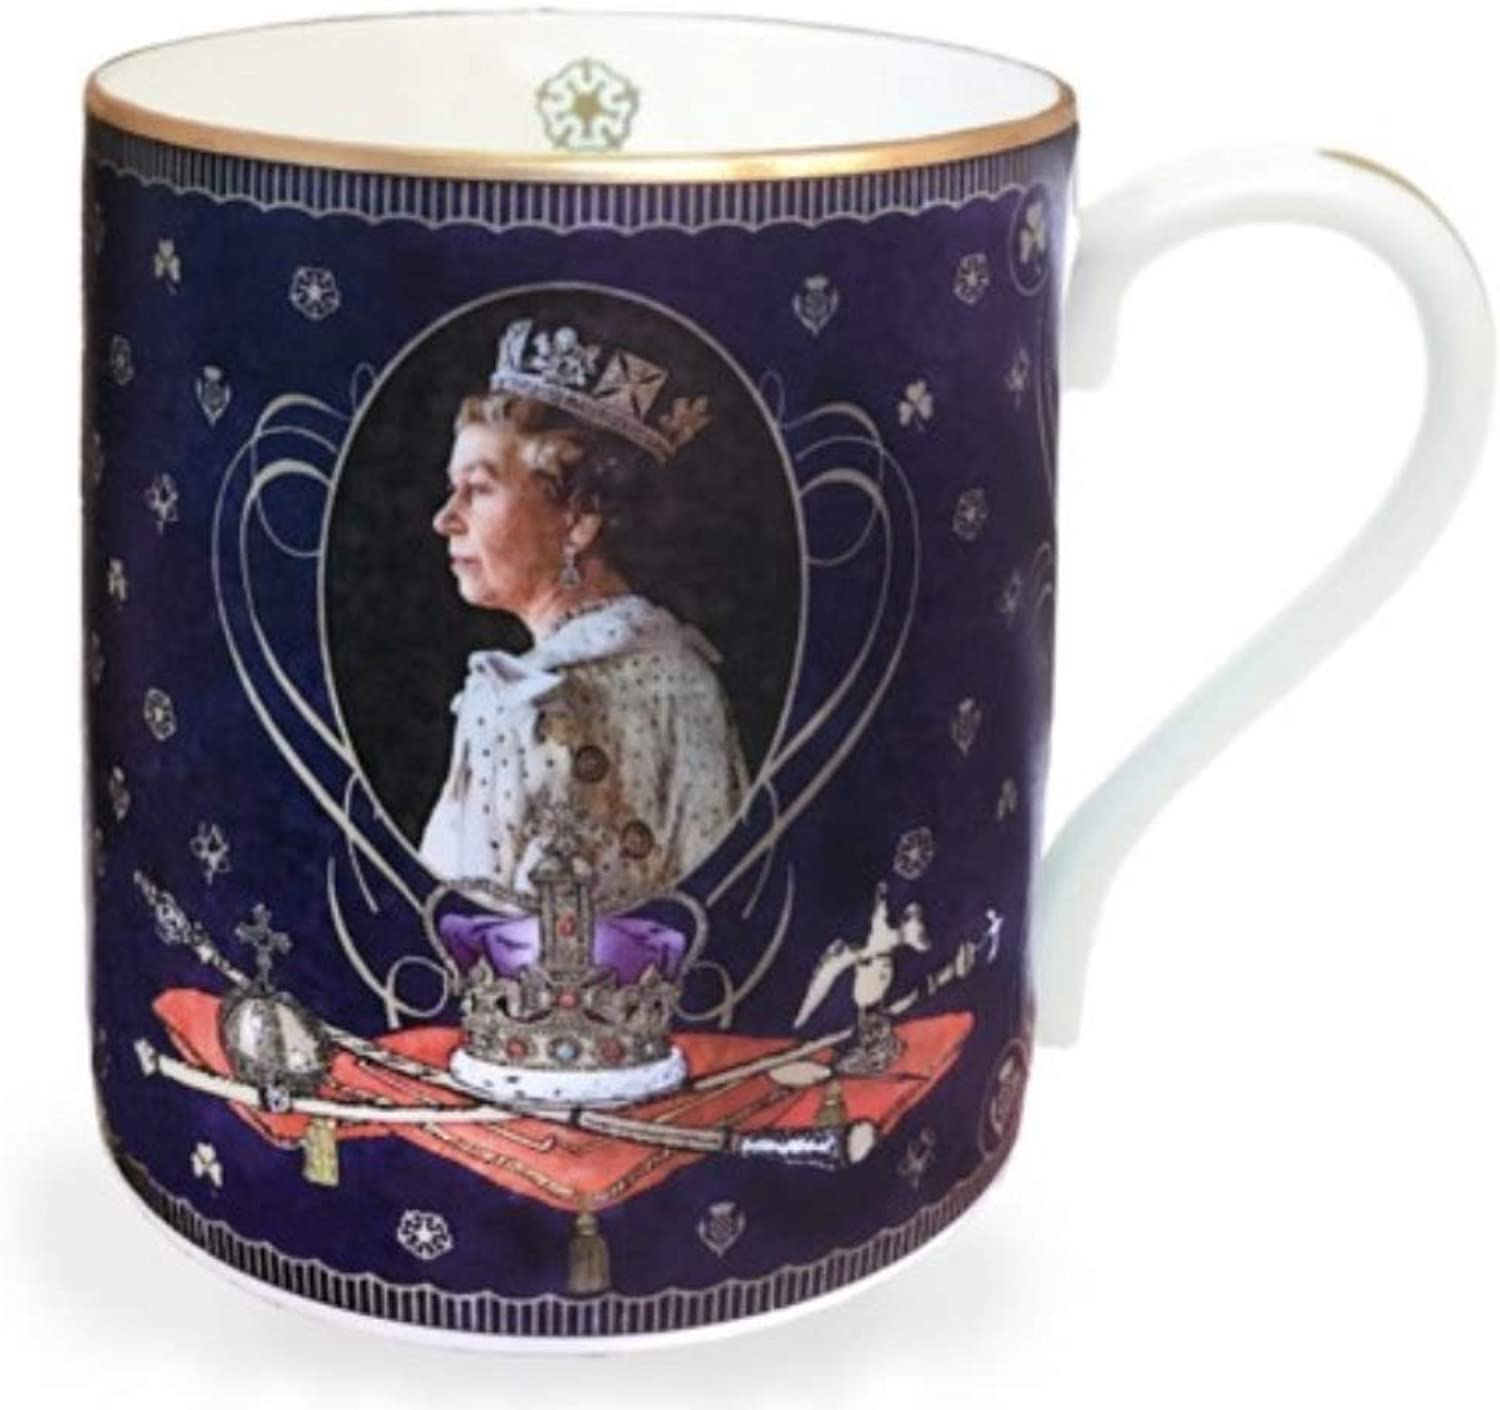 Royal Family Gifts Queen Elizabeth Coffee Mugs Coffee Cup Teacup Tea Mug Gifts for Mom